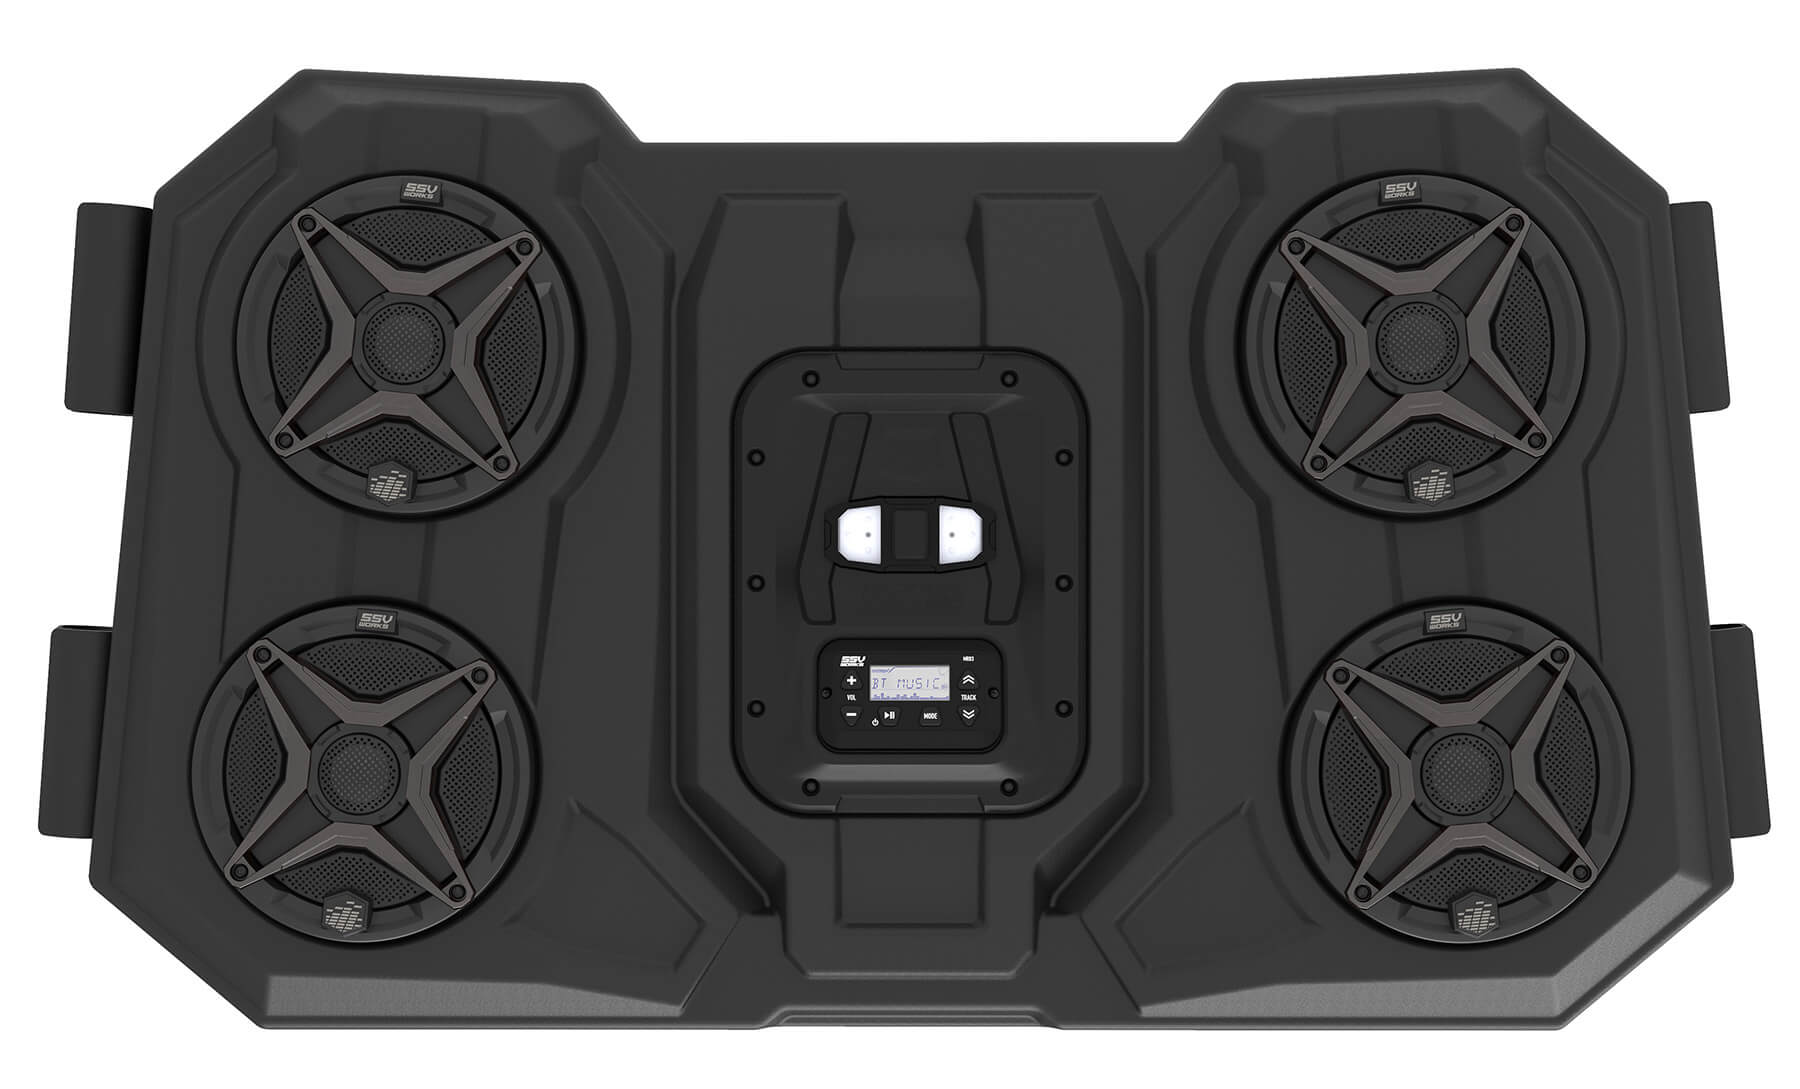 The WP3-RZ3O65 Allows You to Listen to Your Music Via Bluetooth®, AM/FM, or Aux-In Through Four 6.5-Inch Powersports Speakers While Pumping Out 200 Watts of Internal Power